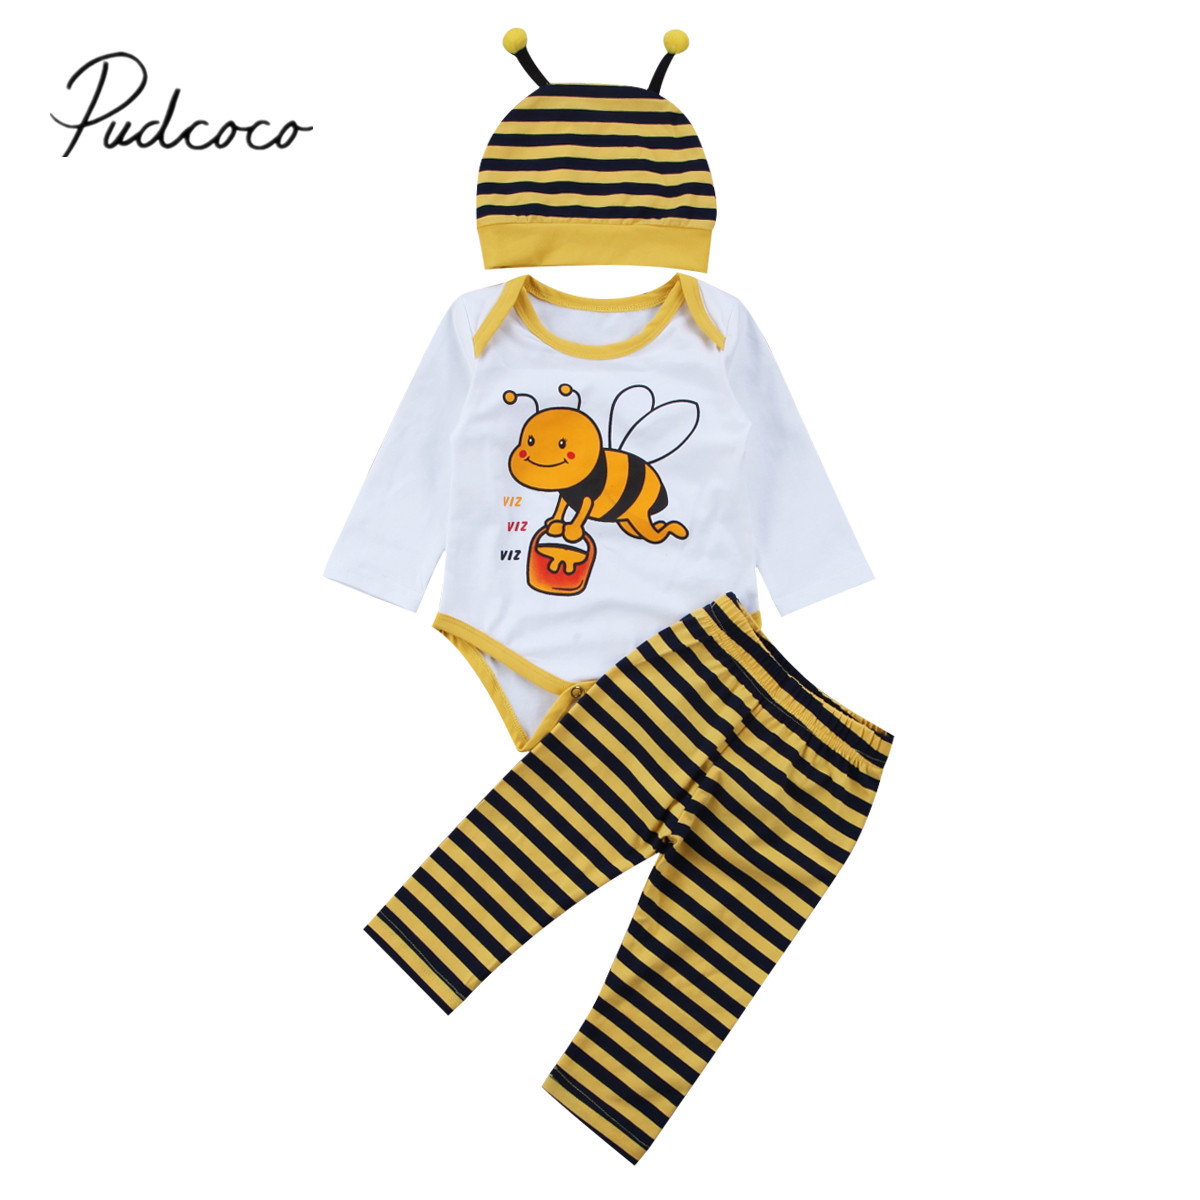 2017 Brand New Cute Newborn Toddler Infant Baby Girls Boy Stripes Top Romper Pants Hat 3Pcs Bee Outfits Cute Set Cotton Clothes 2017 newborn baby boy girls clothing 3pcs sets infant toddle girls romper pants hat snuggle on this muggle baby outfit set